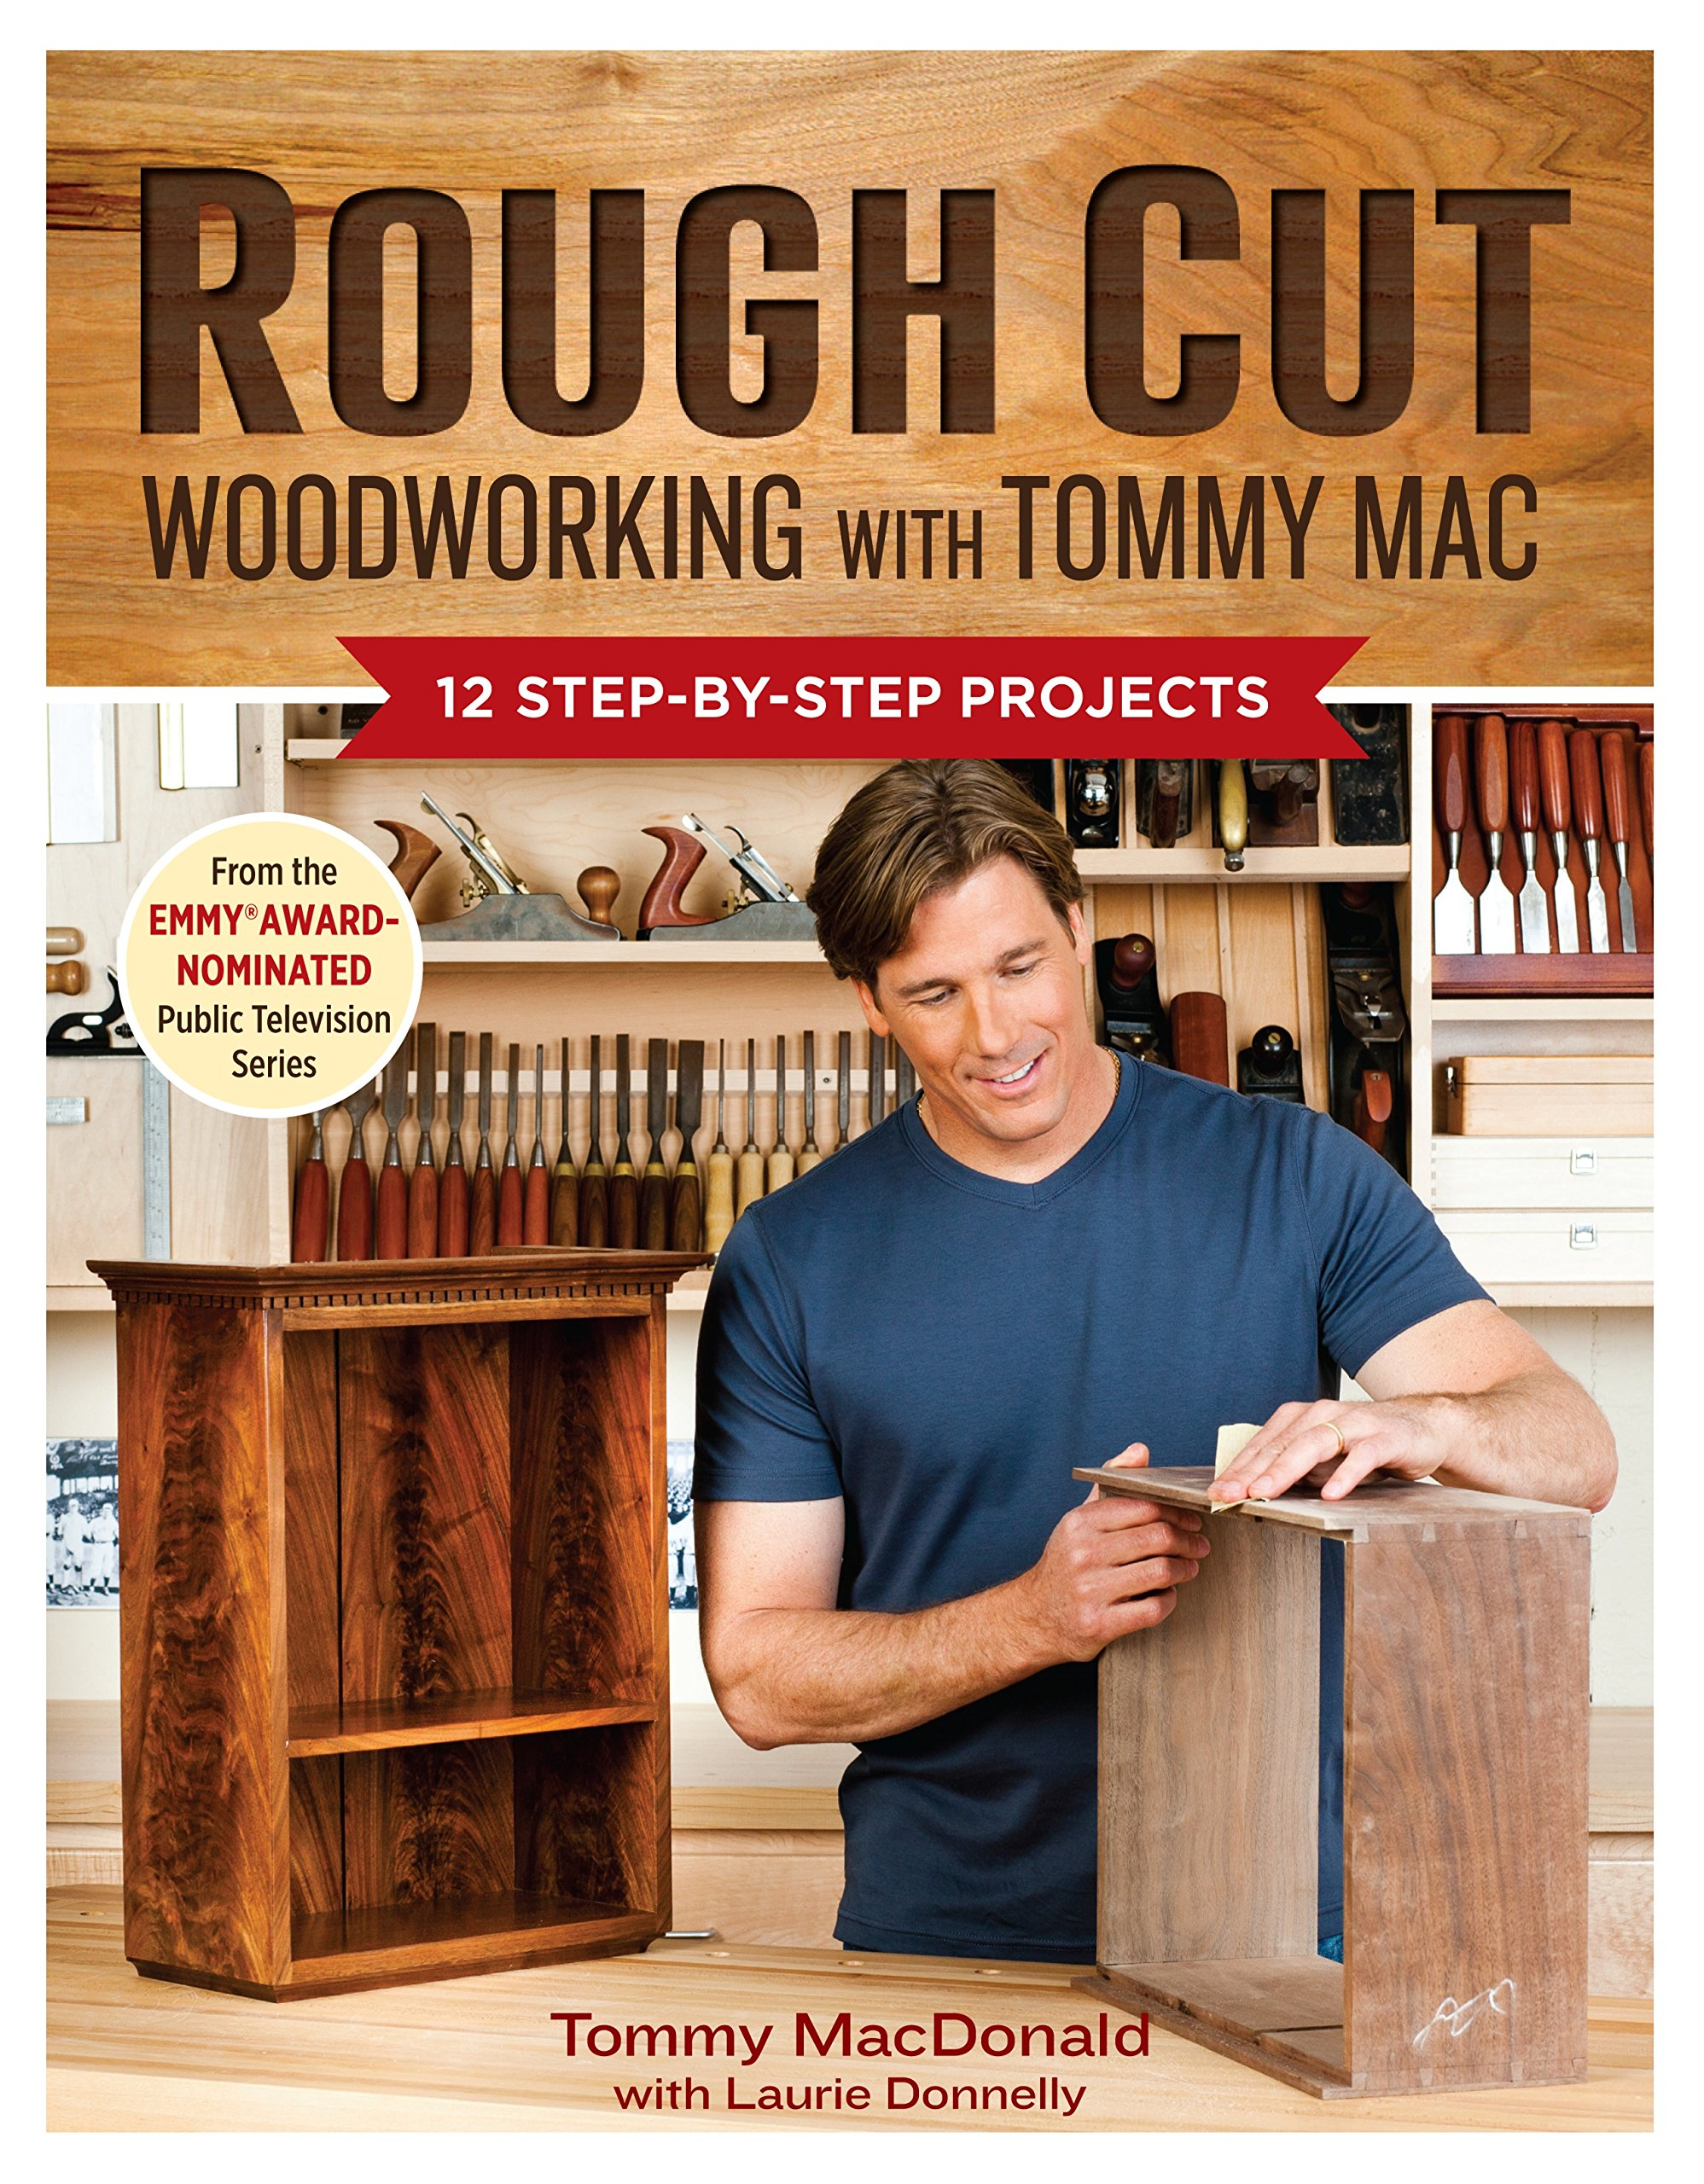 Rough Cut--Woodworking with Tommy Mac: 12 Step-by-Step Projects: Tommy MacDonald, Laurie Donnelly: 9781600854163: Amazon.com: Books